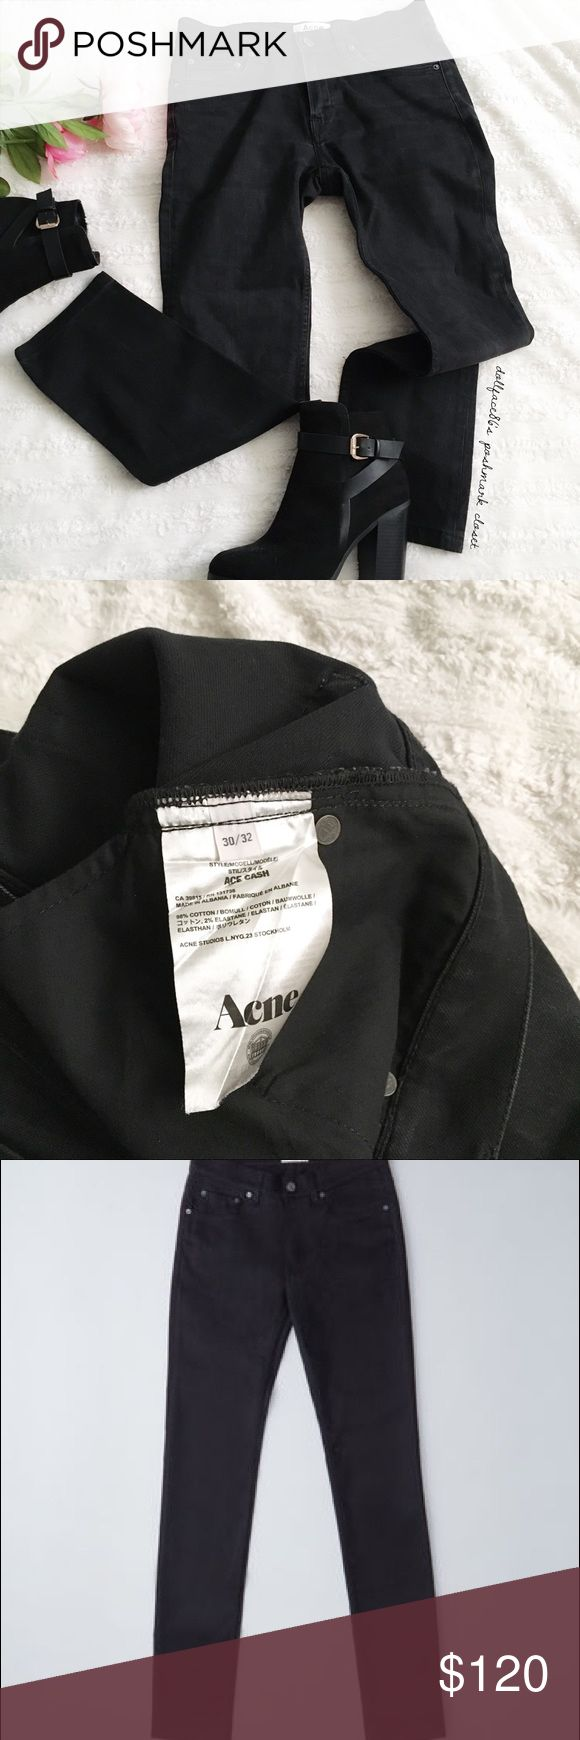 """Acne Black Cash Ace Jeans ✦   ✦  ❥waist:15"""" ❥hips:18""""  ❥length:38"""" rise:10.5"""" ❥inseam:26.5"""" ankle:6.5"""" ➳cotton+2%elastane/machine wash  ➳fit:the sizing on these are kind of crazy, the tag says 30/32, but in my opinion they fit like a women's size 2 ➳condition:gently used, but has some distressing not a perfect matte black  ✦20% off bundles of 3/more items ✦No Trades  ✦NO HOLDS ✦No lowball offers/sales are final  ✦‼️BE A RESPONSIBLE BUYER PLS ASK QUESTIONS/USE MEASUREMENTS Acne Jeans Skinny"""